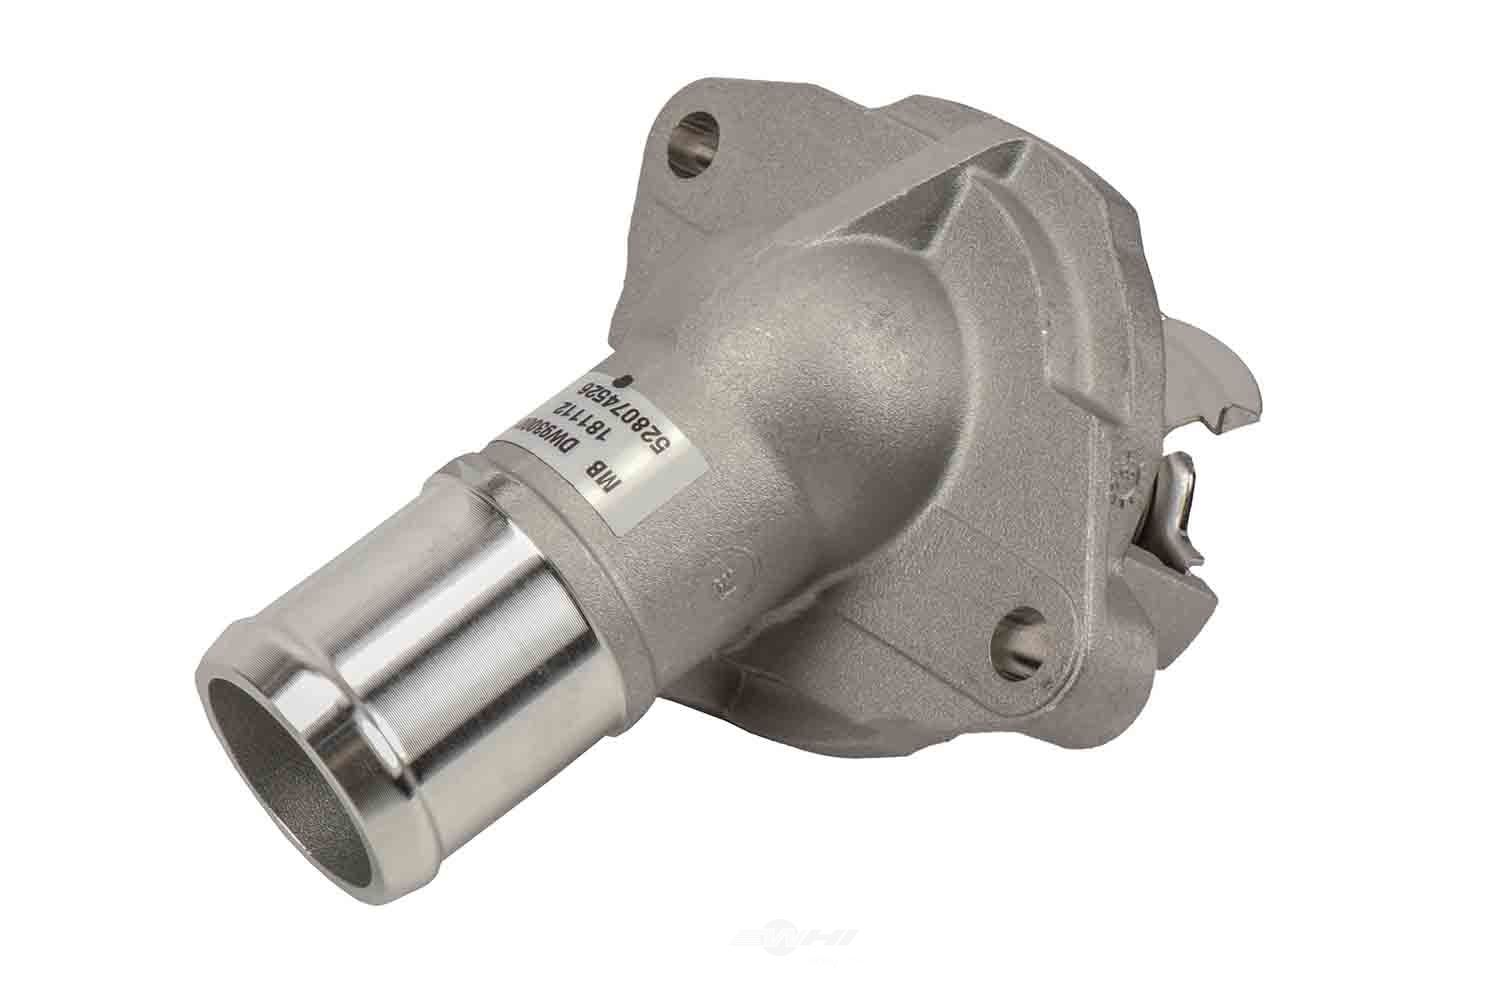 ACDELCO GM ORIGINAL EQUIPMENT - Engine Coolant Thermostat / Water Inlet Assembly - DCB 15-81835